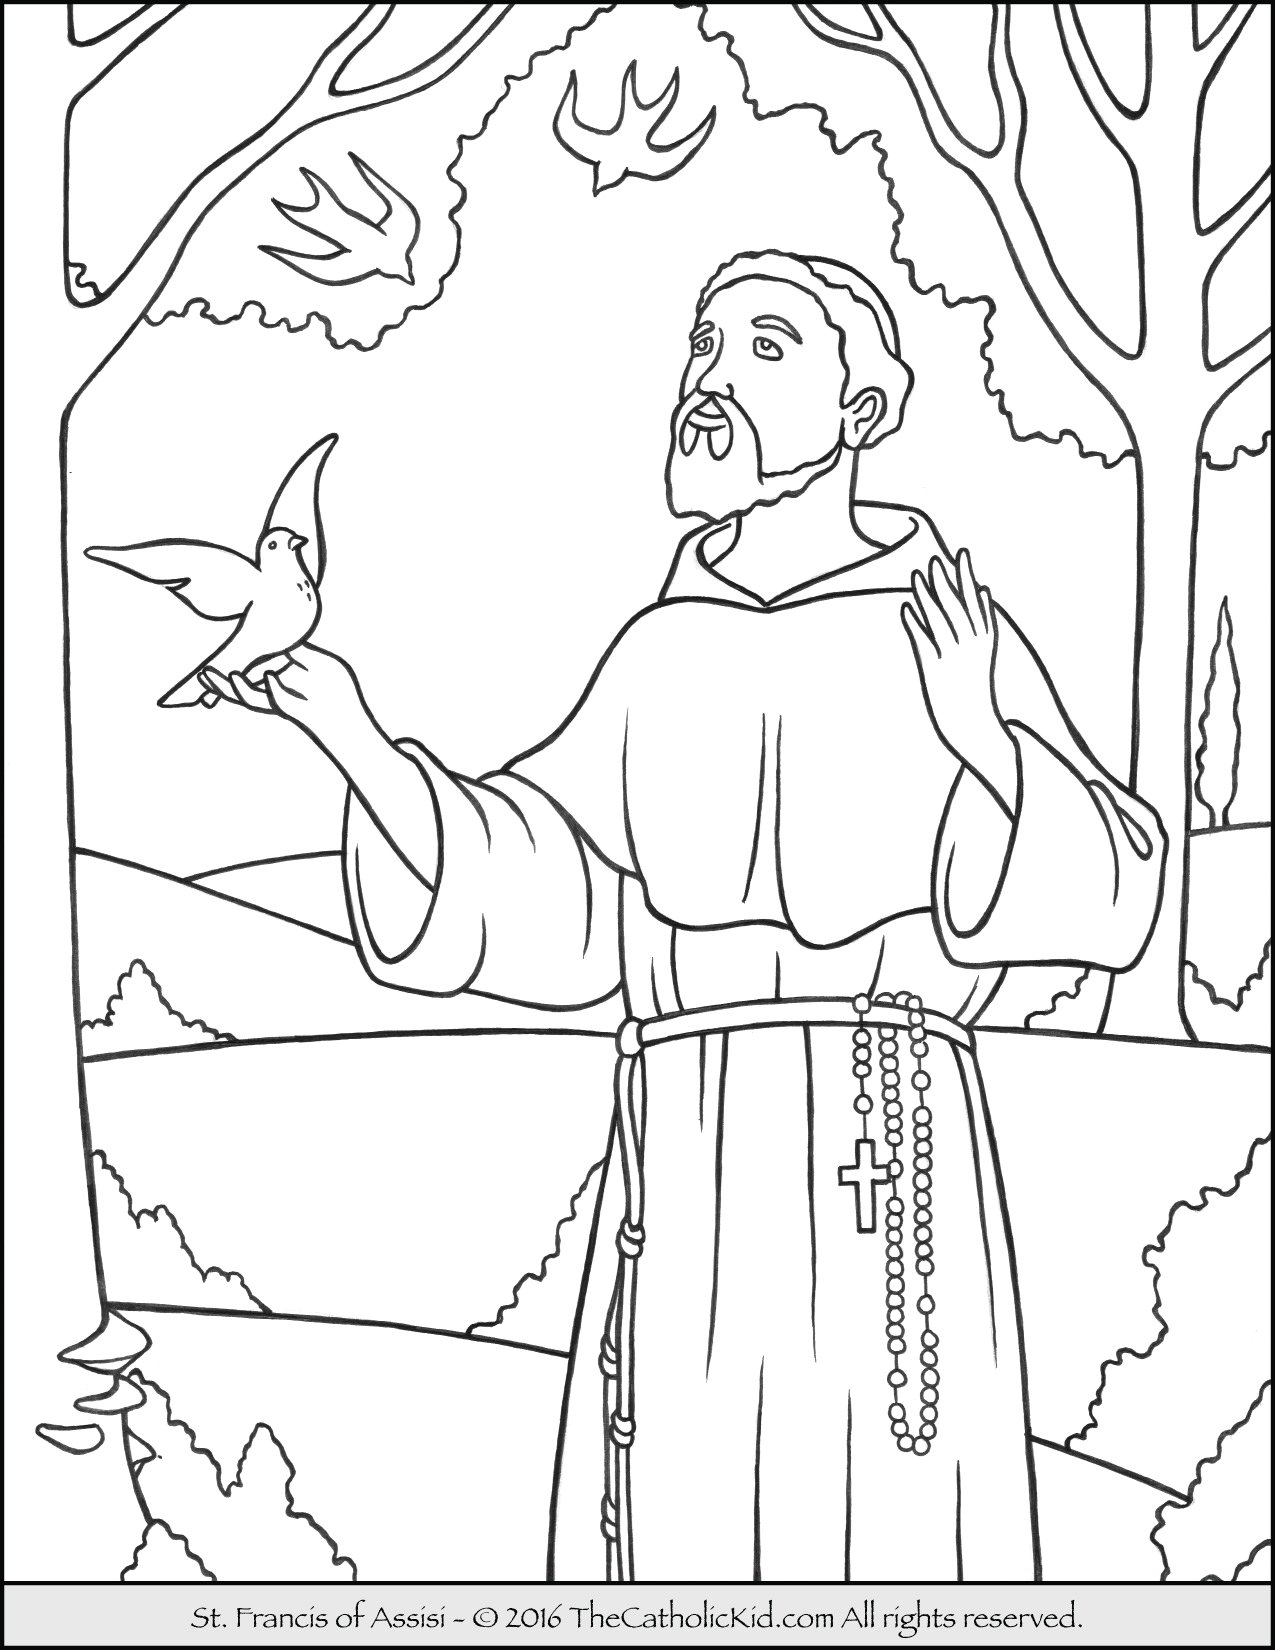 Coloring Page Of St Francis Of assisi Saint Francis Coloring Page